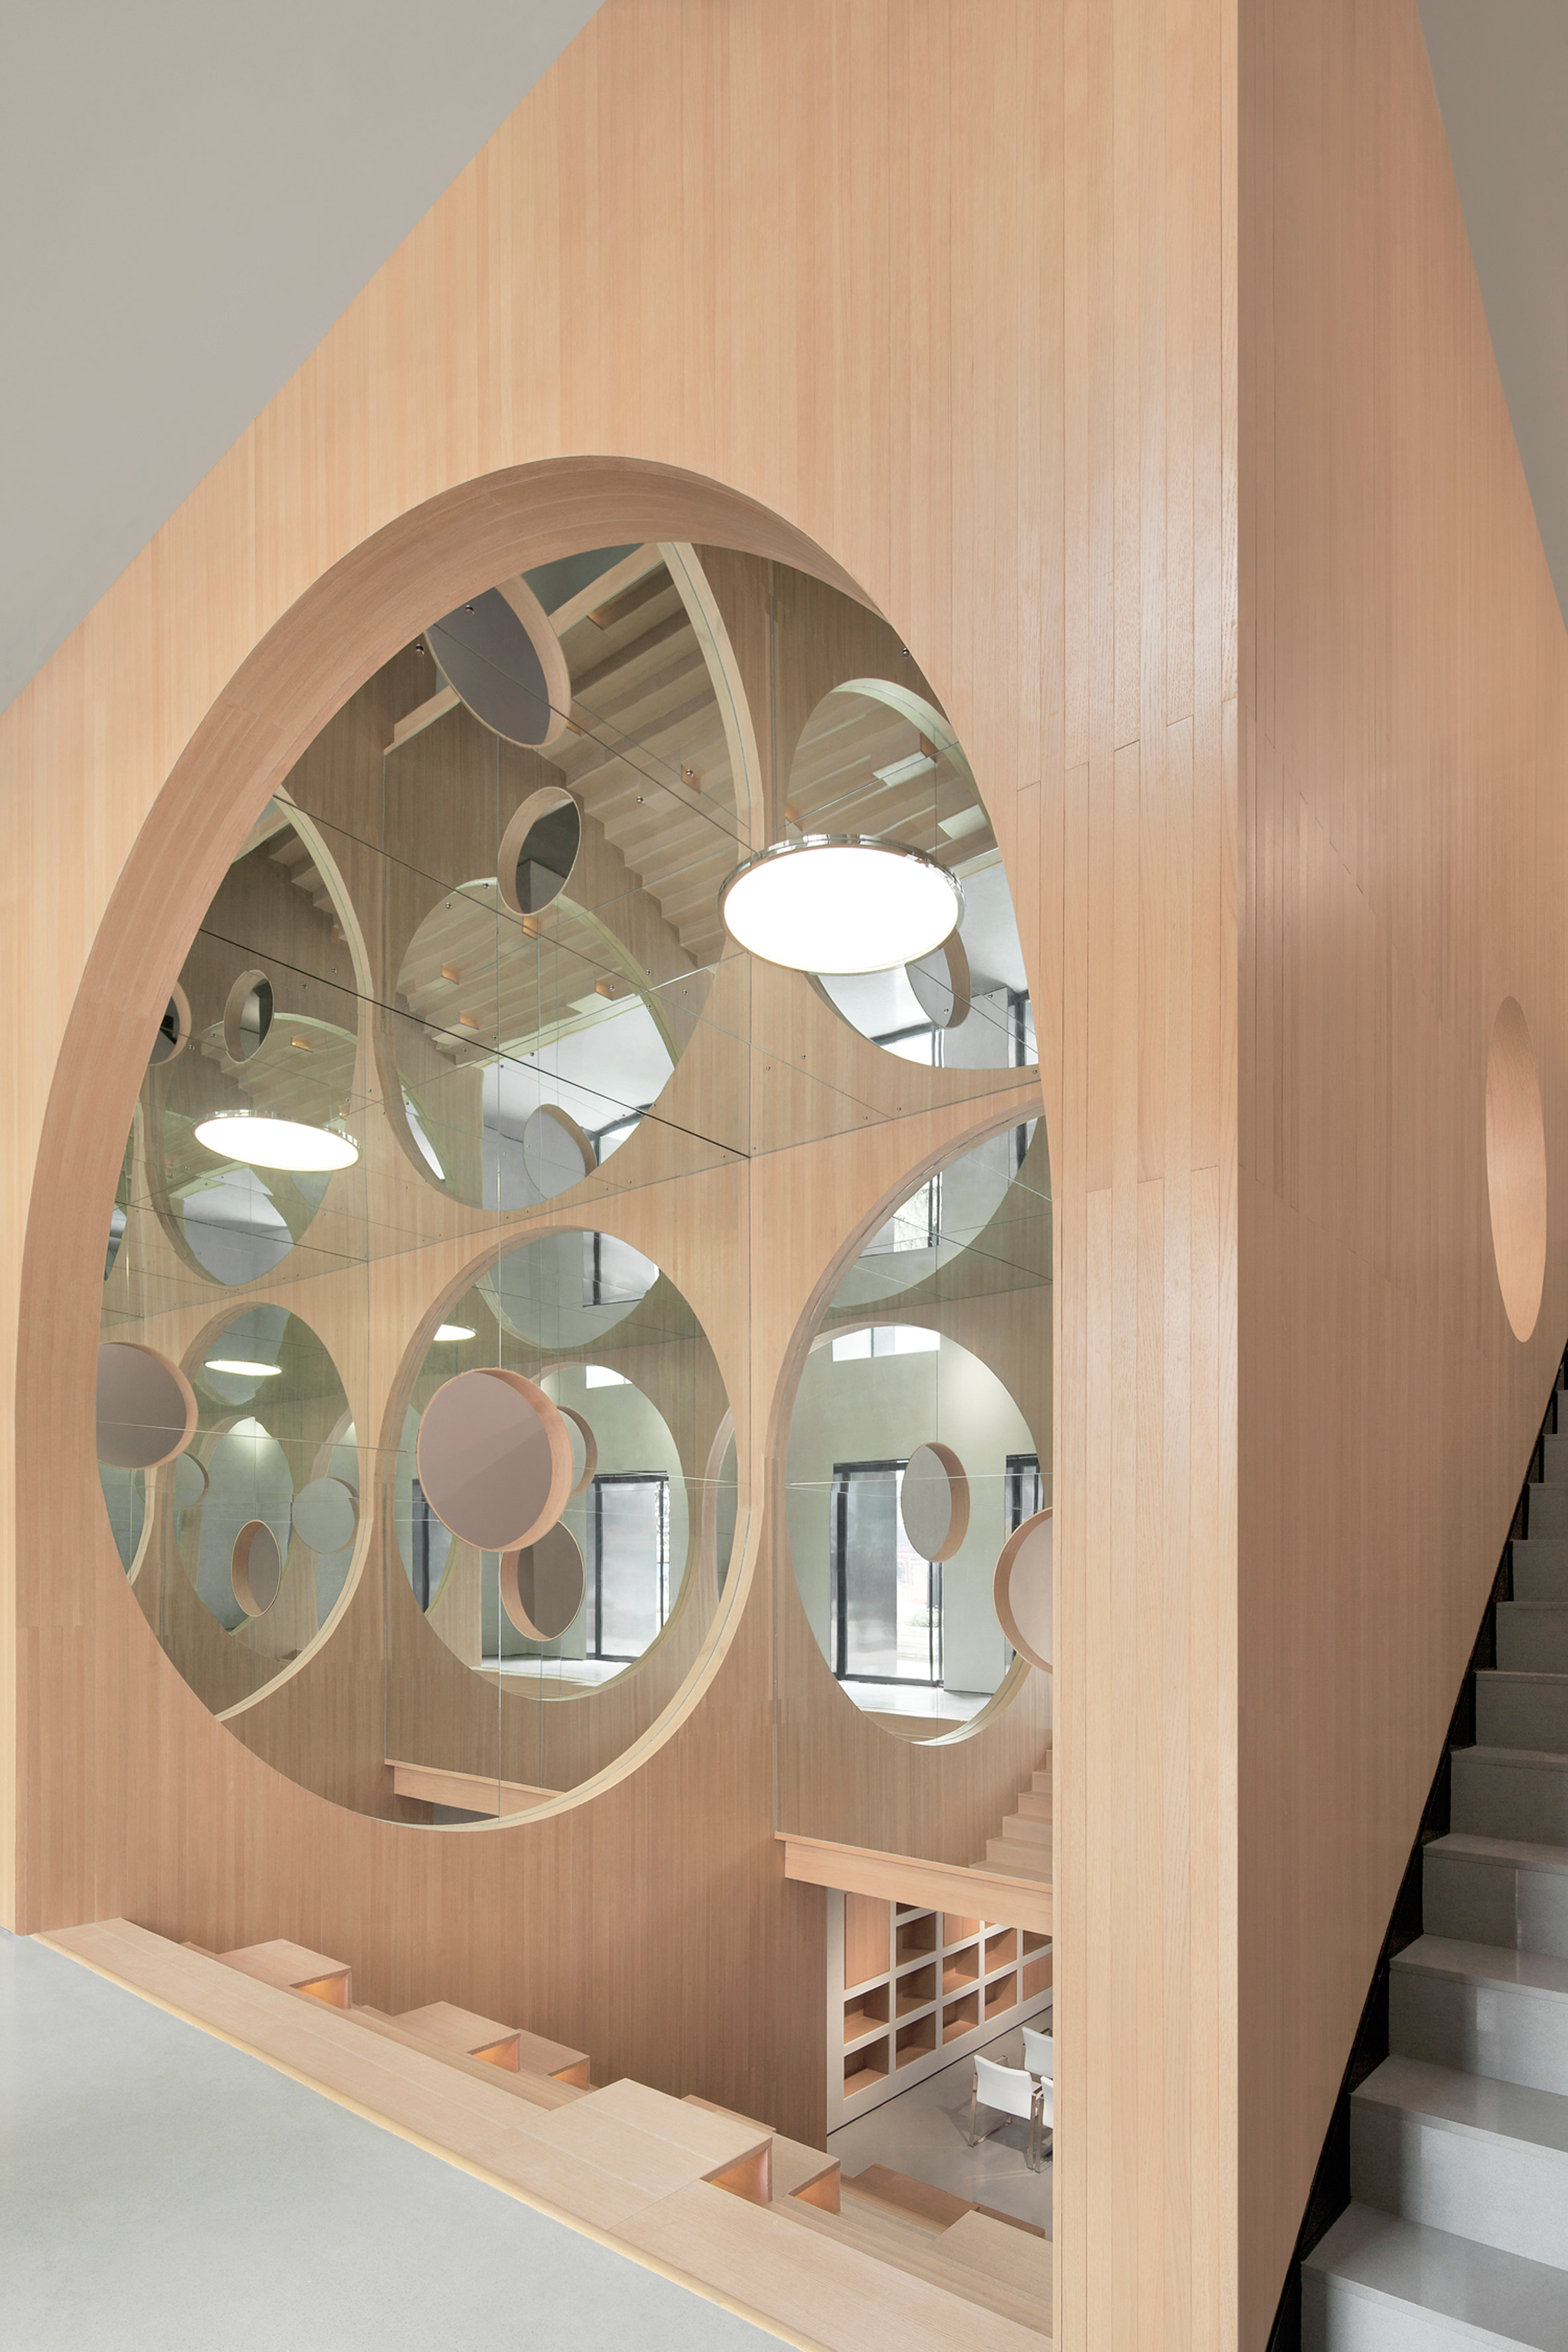 Mirrors reflect arched openings and steps inside wooden auditorium by Penda